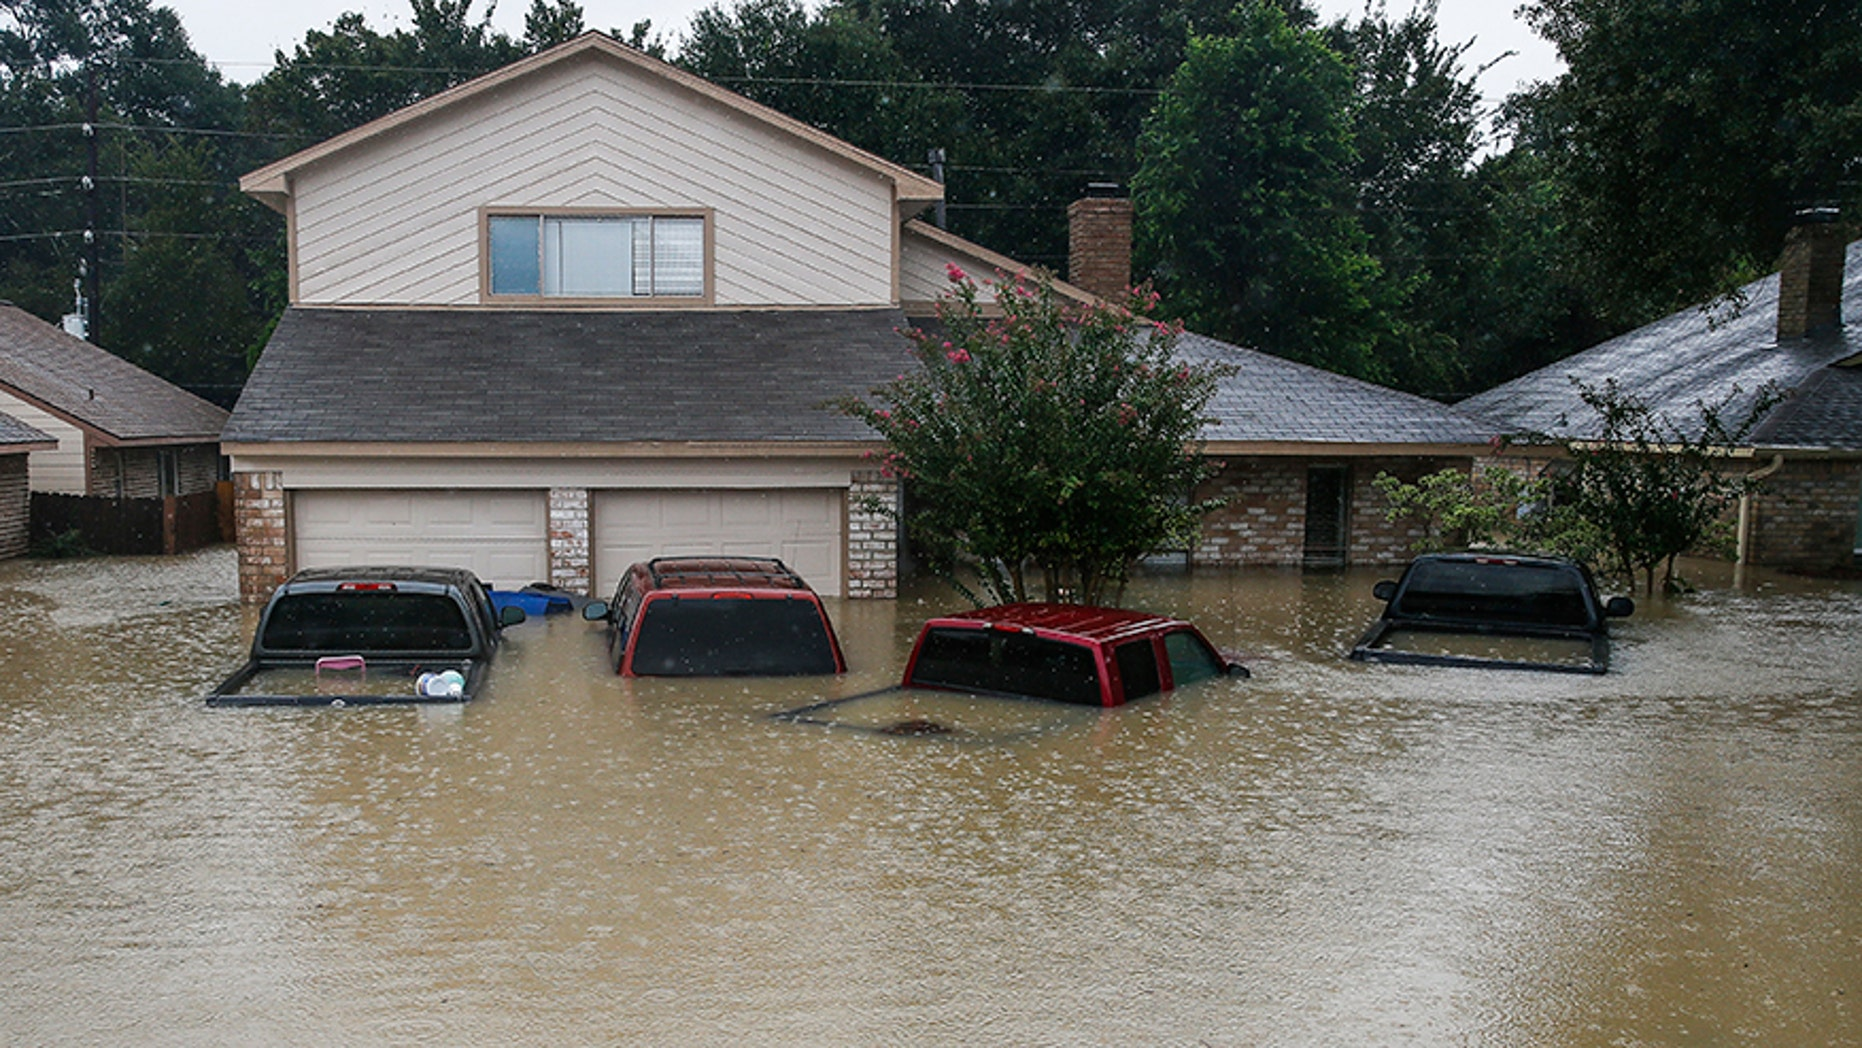 FILE - In this Aug. 29, 2017, file photo, trucks are submerged on Pine Cliff Drive in Houston during heavy rainfall from Tropical Storm Harvey. Few American cities depend on cars as much as Houston, and Harvey's record rainfall left flooded roads and neighborhoods with cars submerged and, in most cases, impossible to salvage. (Michael Ciaglo/Houston Chronicle via AP)